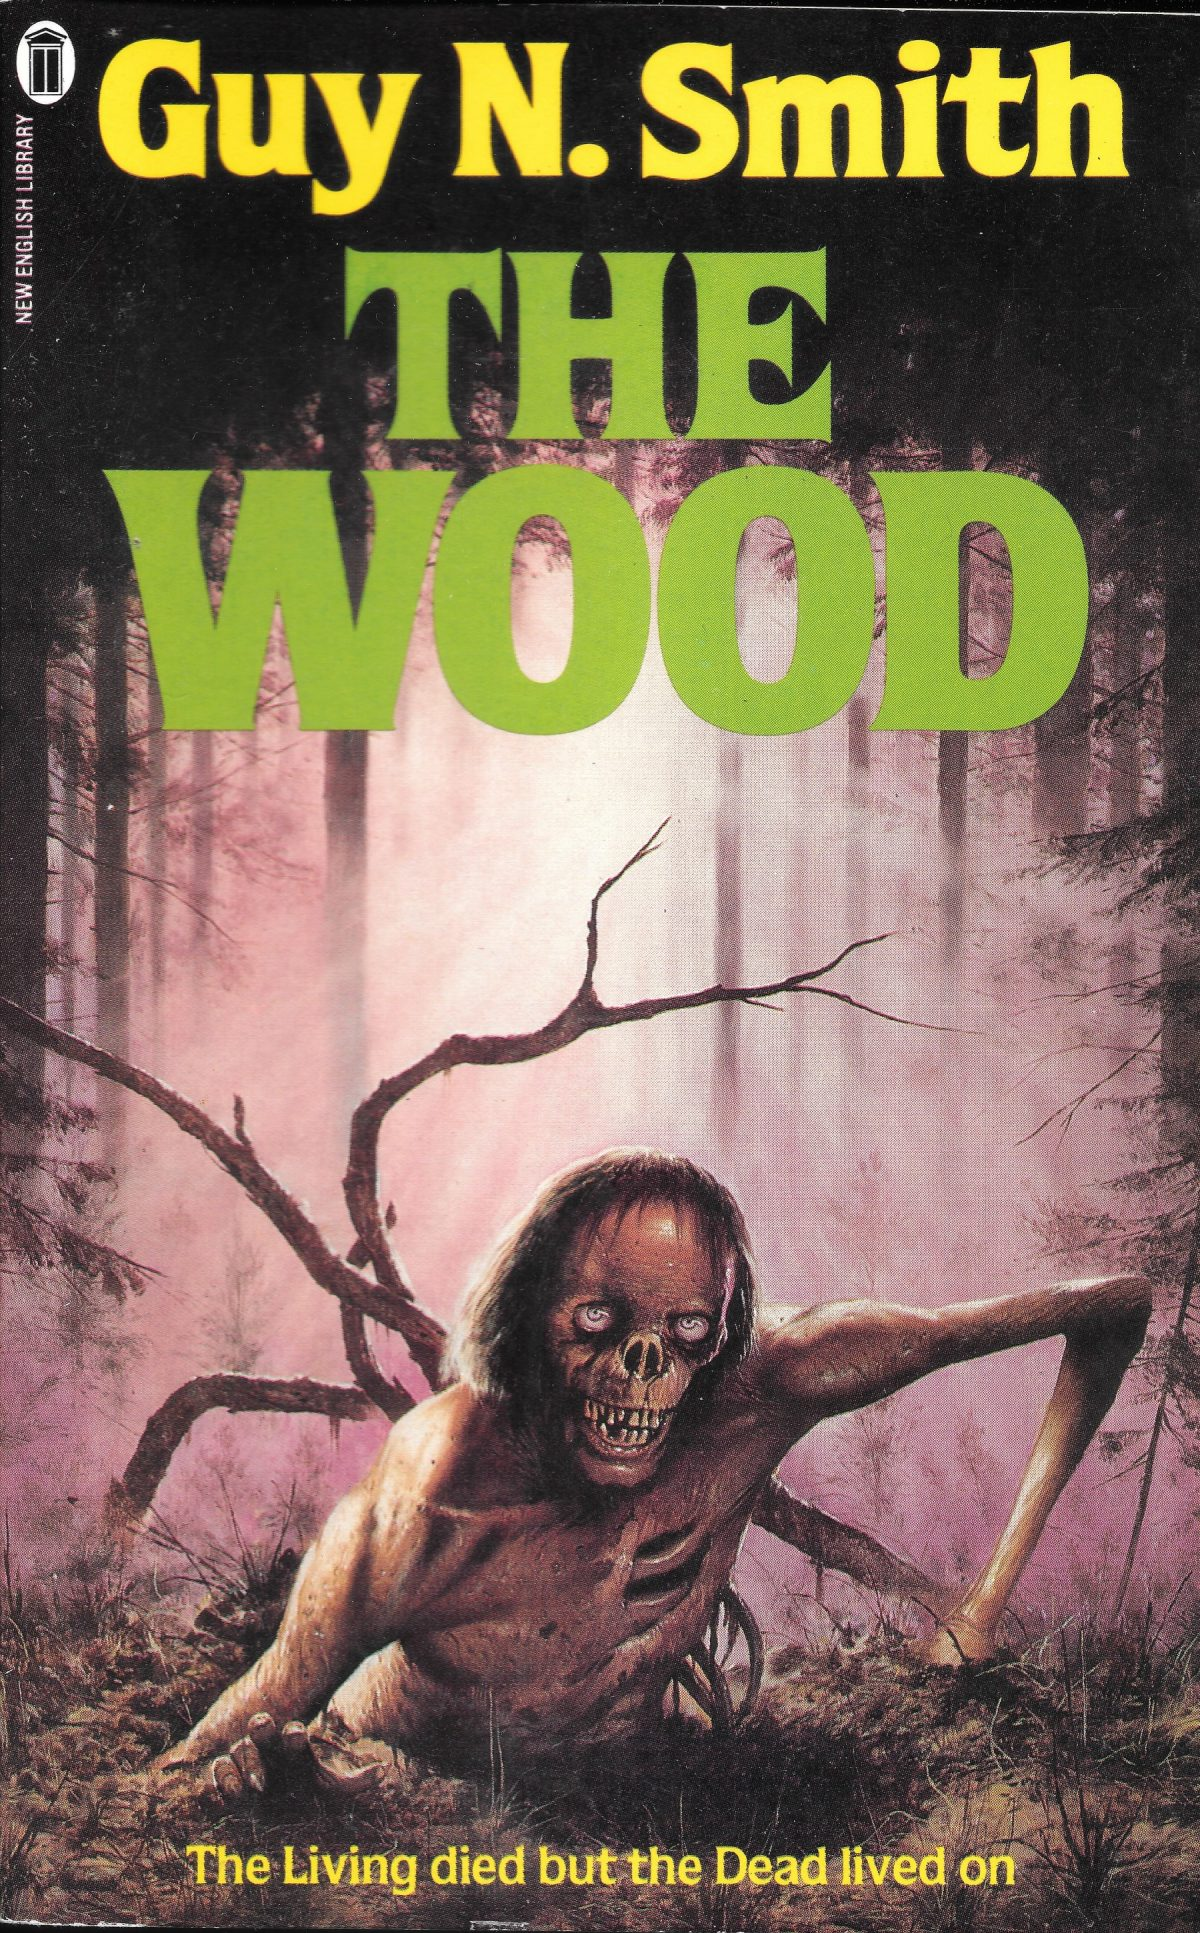 Guy N Smith, The Wood, book, horror fiction, horror